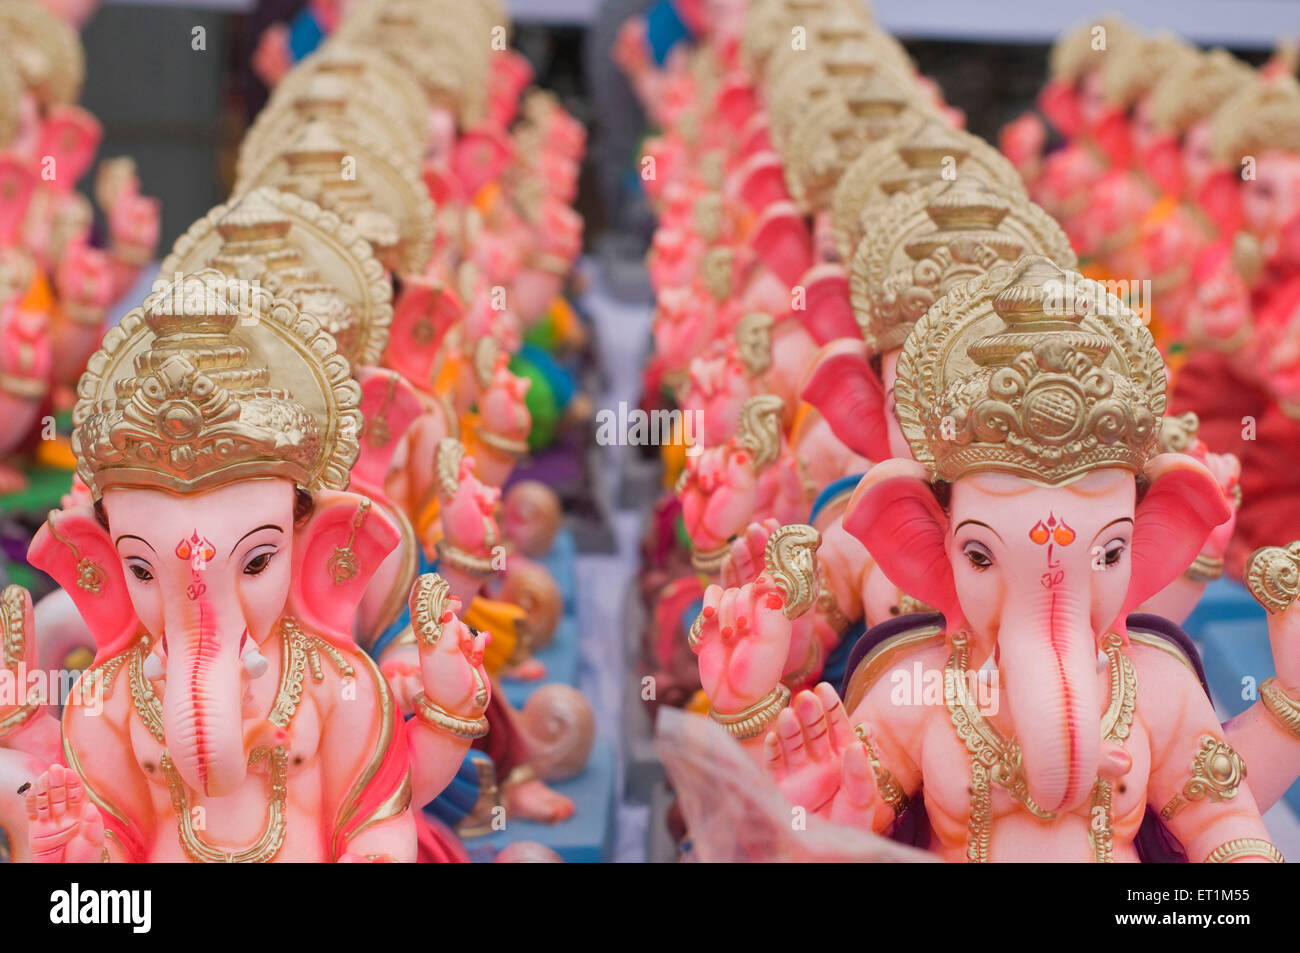 Several small idols of lord Ganesha line up for sale Pune Maharashtra India Asia - Stock Image